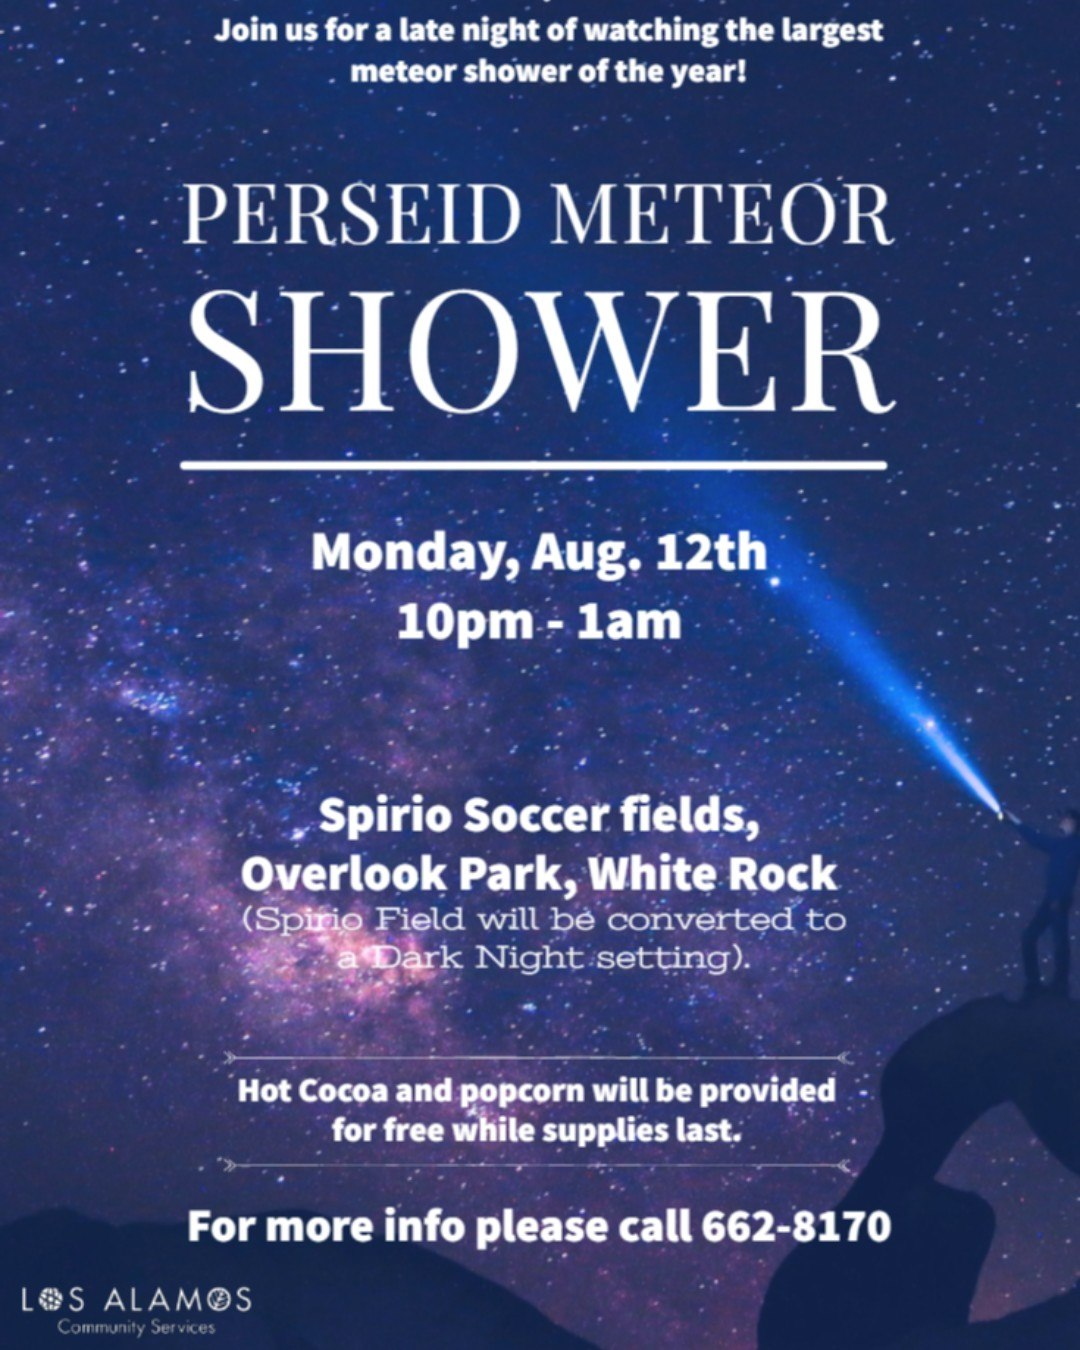 Look Up! Perseid Meteor Shower this weekend